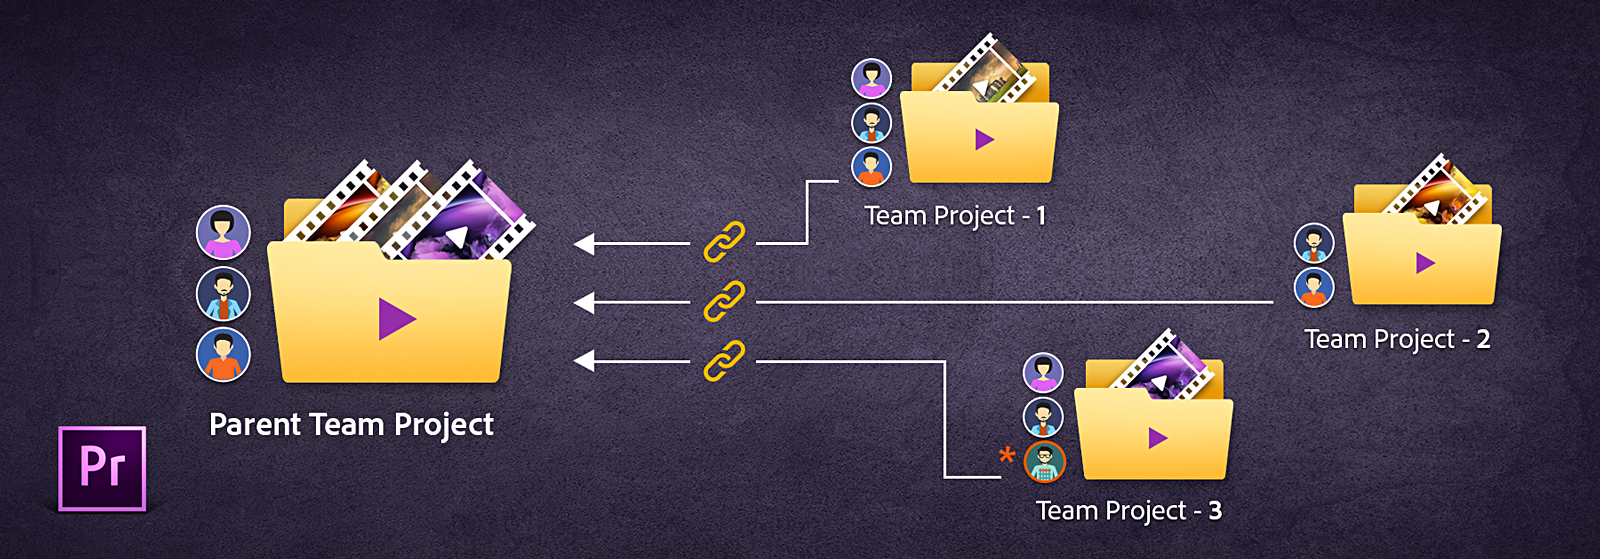 Linked team project